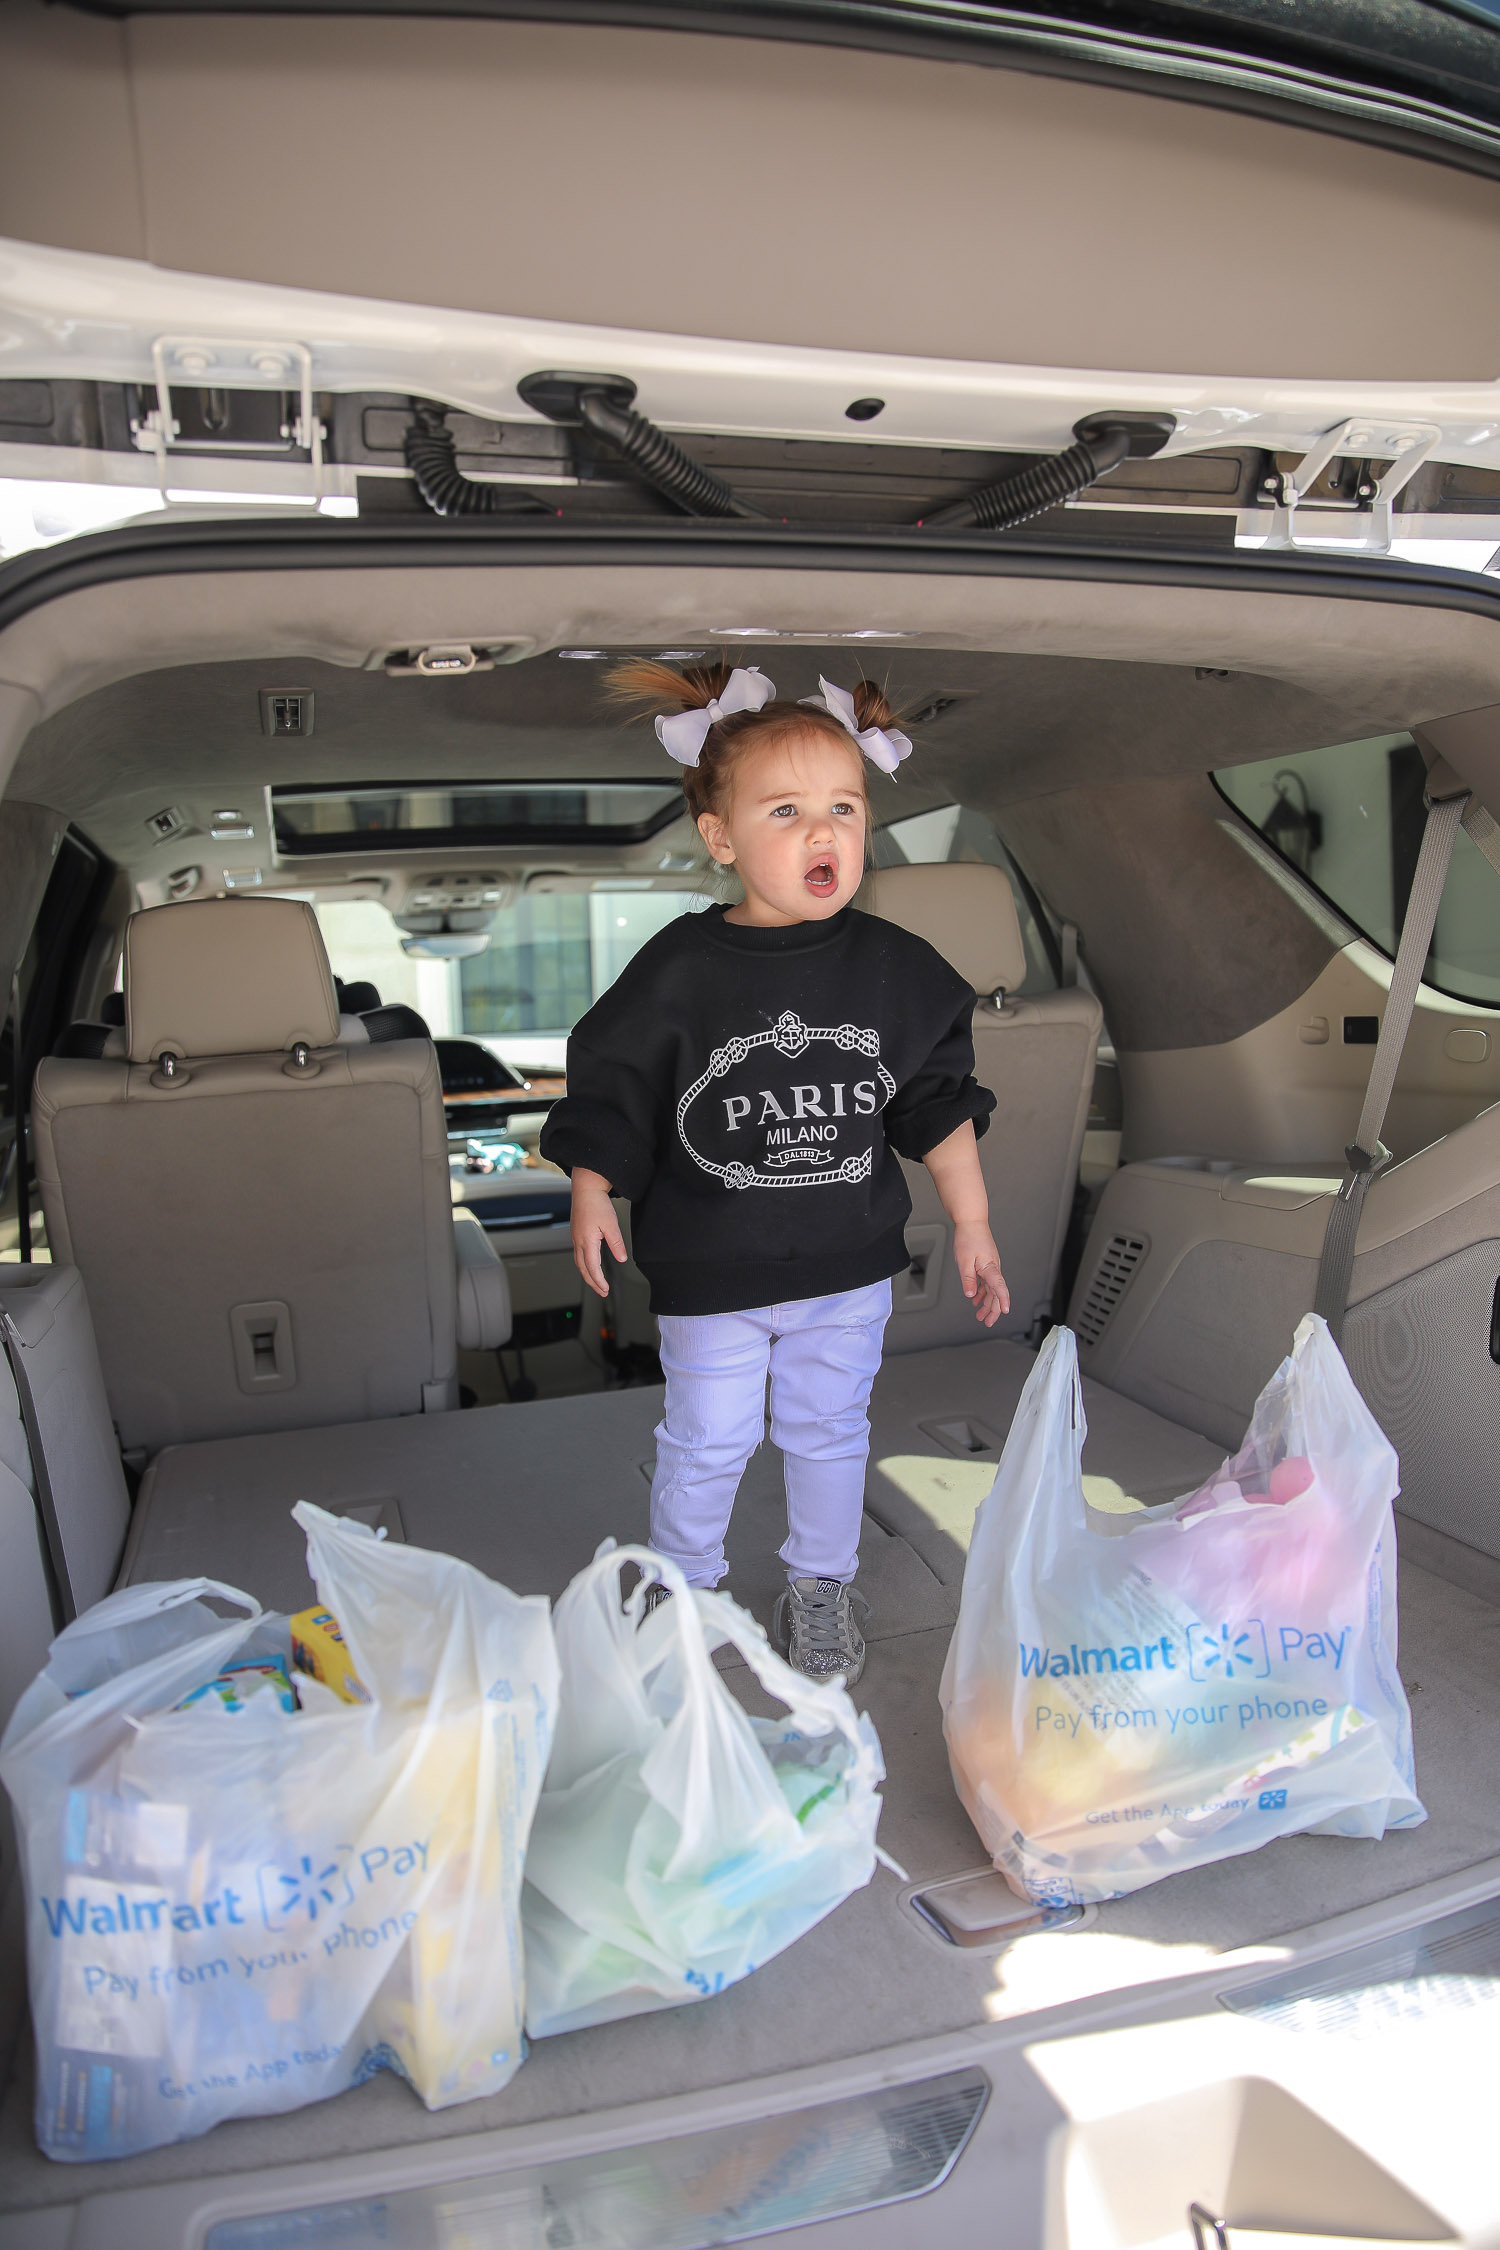 Easter Basket Ideas by popular US lifestyle blog, The Sweetest Thing: image of a little girl wearing a black Paris sweatshirt, white jeans, and white hair bows standing next to some Walmart shopping bags in the back of a White SUV.